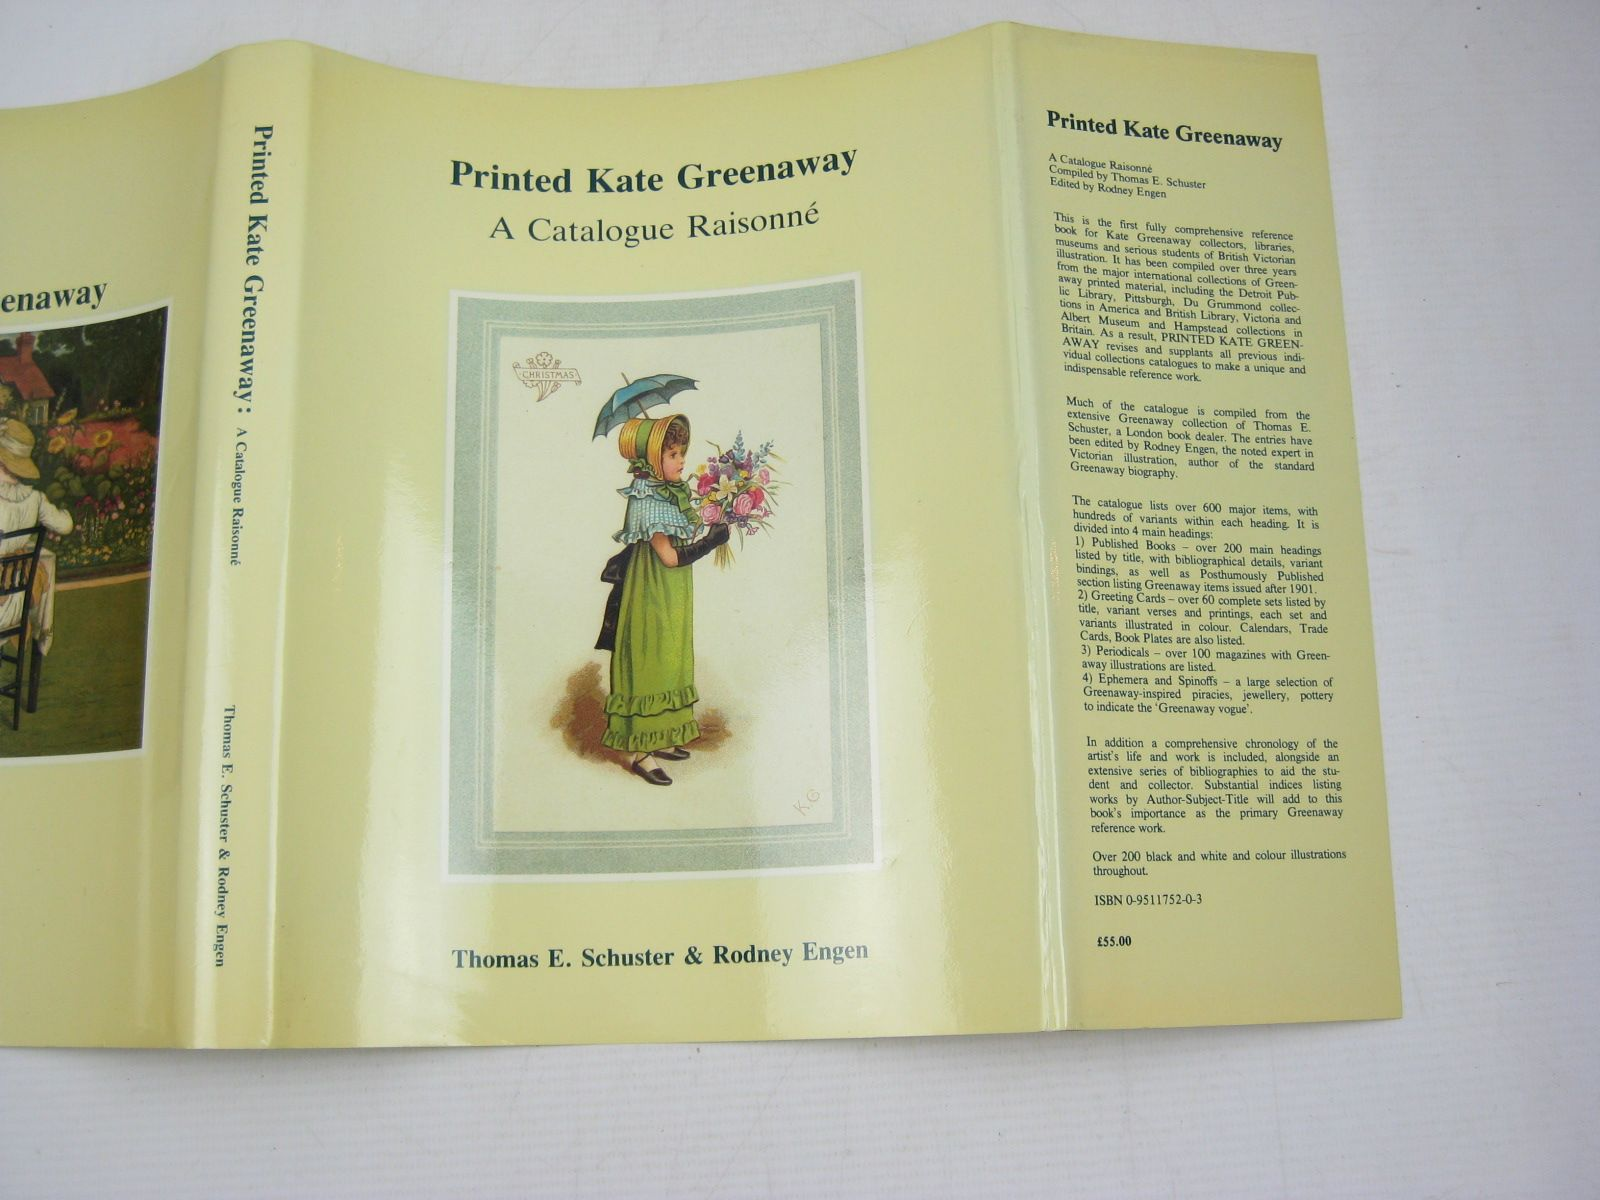 Photo of PRINTED KATE GREENAWAY A CATALOGUE RAISONNE written by Schuster, Thomas E. Engen, Rodney K. illustrated by Greenaway, Kate published by T.E. Schuster (STOCK CODE: 1403761)  for sale by Stella & Rose's Books